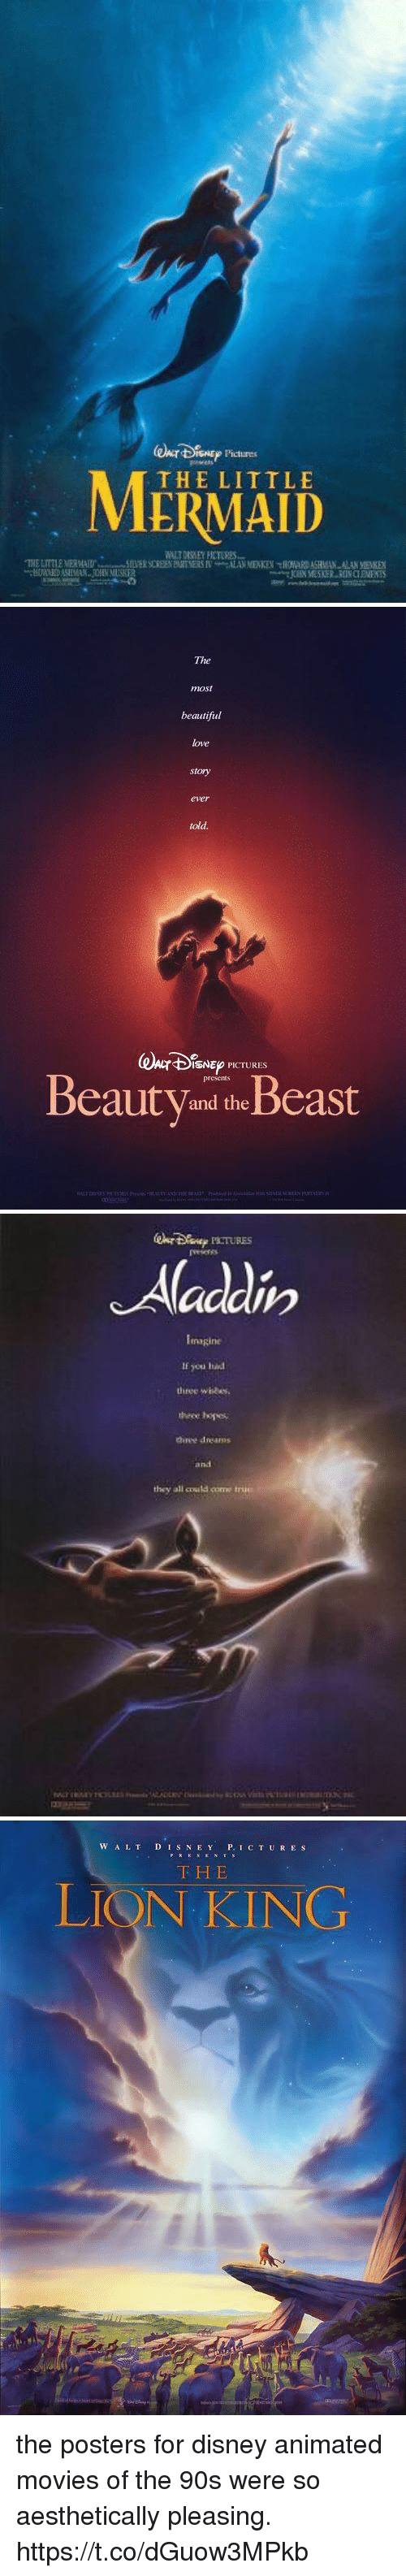 Beautiful, Disney, and Love: Pictures  THE LITTLE   The  most  beautiful  love  story  ever  told  @kr4%Nep PK TURES  BeautV and theBeast   If you hid  three wblbes  theee ys  they all could come   W A LTD IS N E Y P. IC T UR ES  F H E  LIQN KING the posters for disney animated movies of the 90s were so aesthetically pleasing. https://t.co/dGuow3MPkb